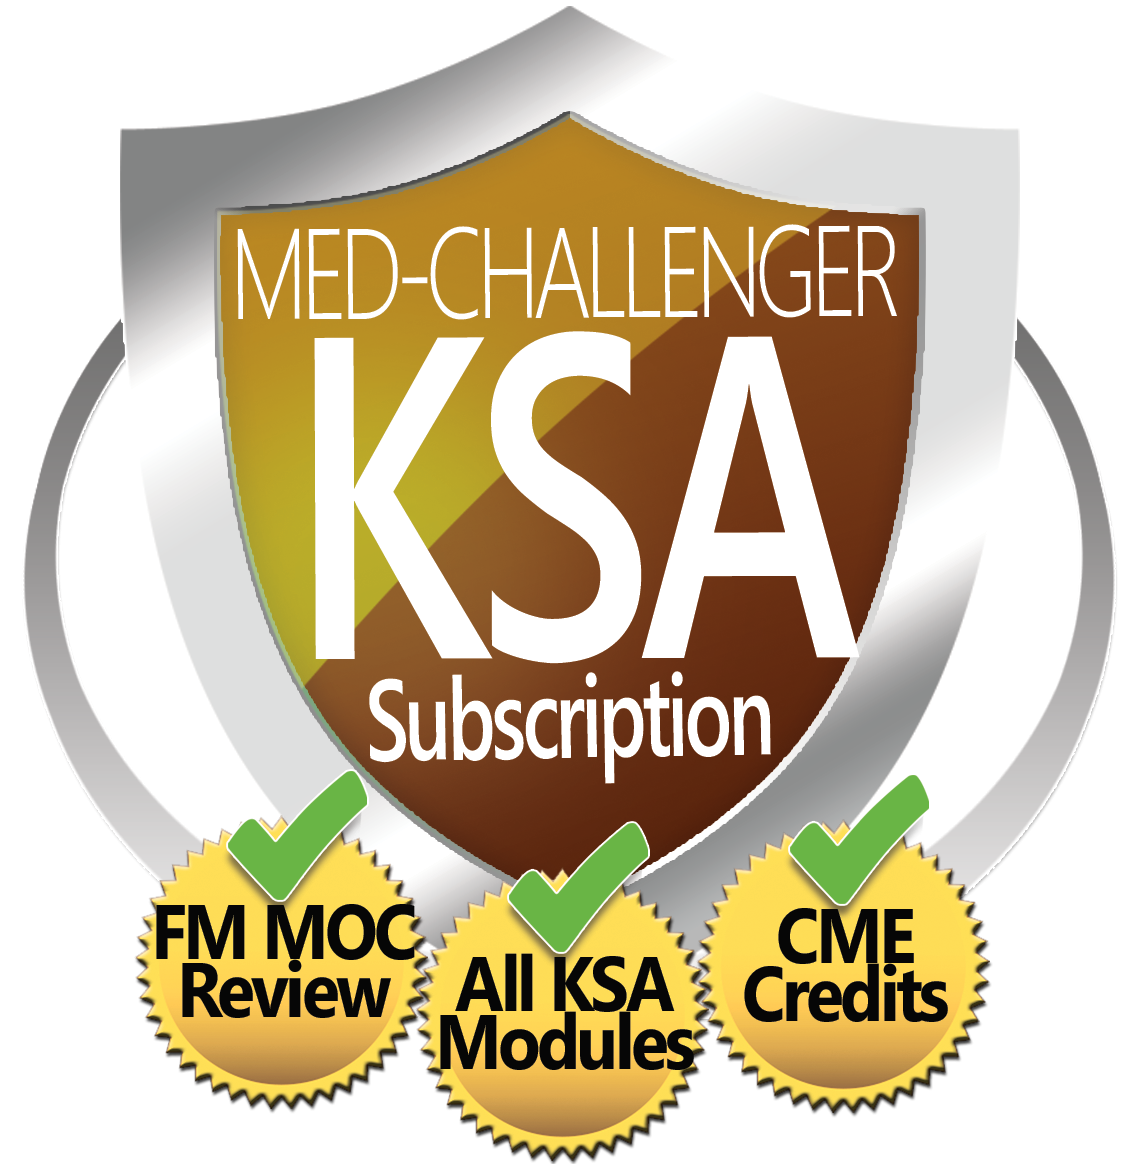 KSA Modules, online education, Med-Challenger KSA Subscription, FM MOC Review, All KSA Modules, CME Credits